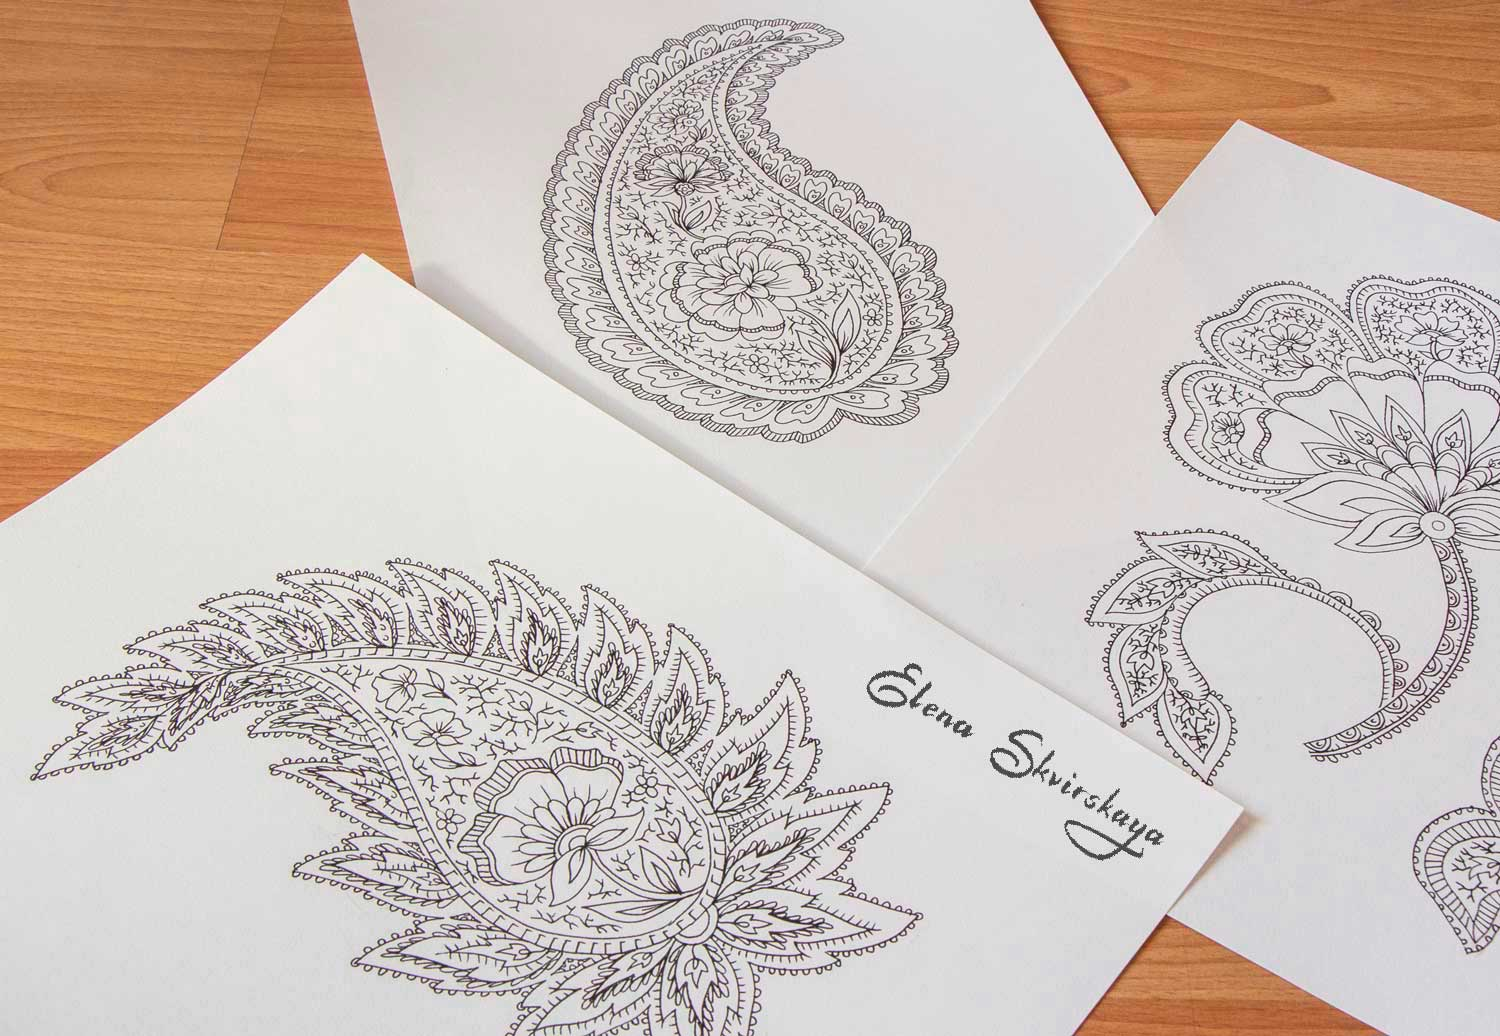 paisleys sketches for a textile design, to be scanned at high resolution and assembled in Photoshop